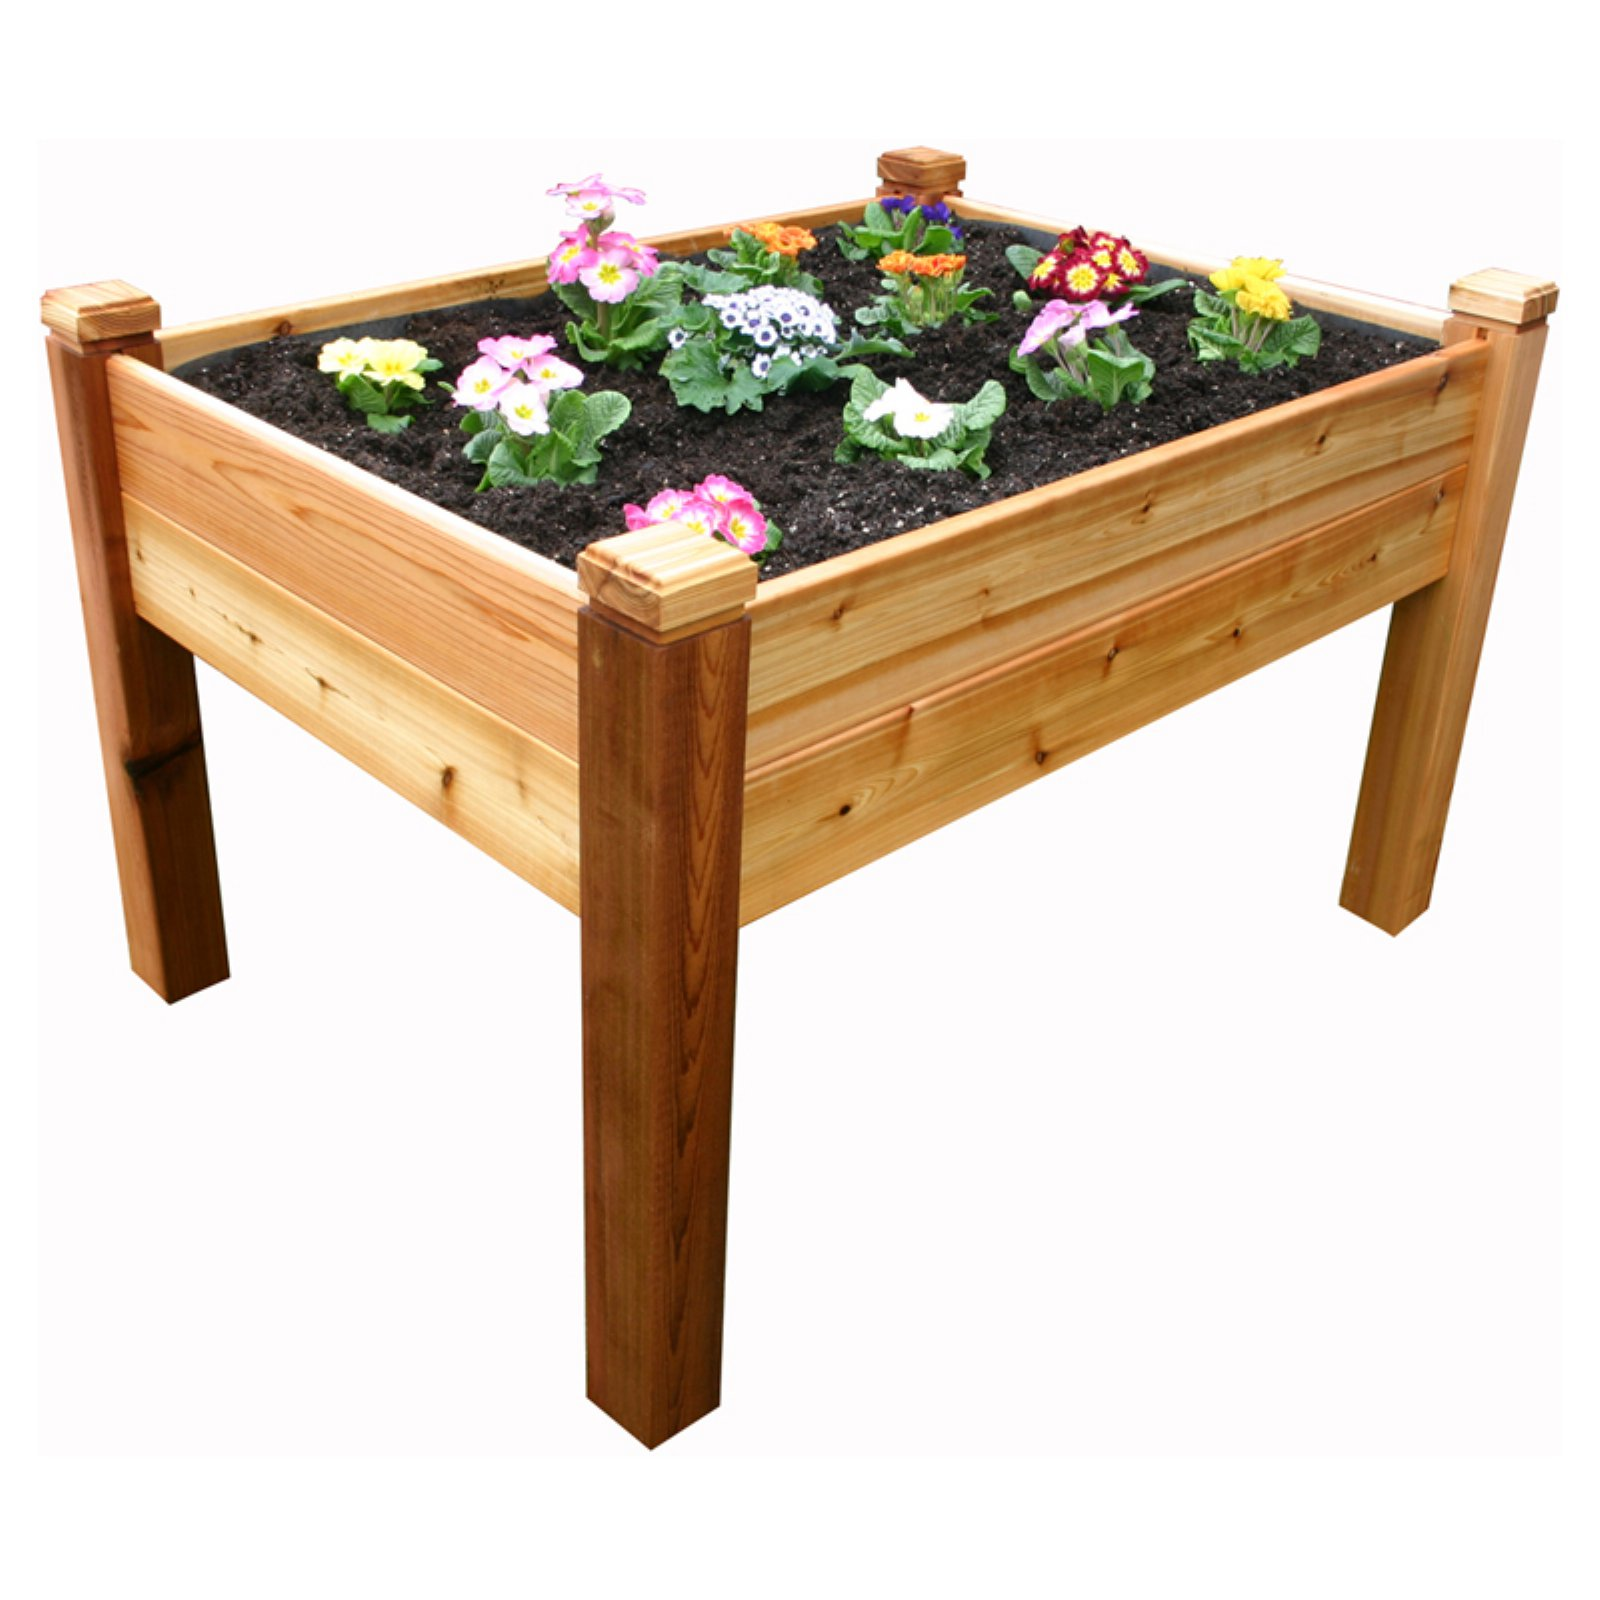 Outdoor Living Today Raised Garden Bed - 4 x 3 ft.